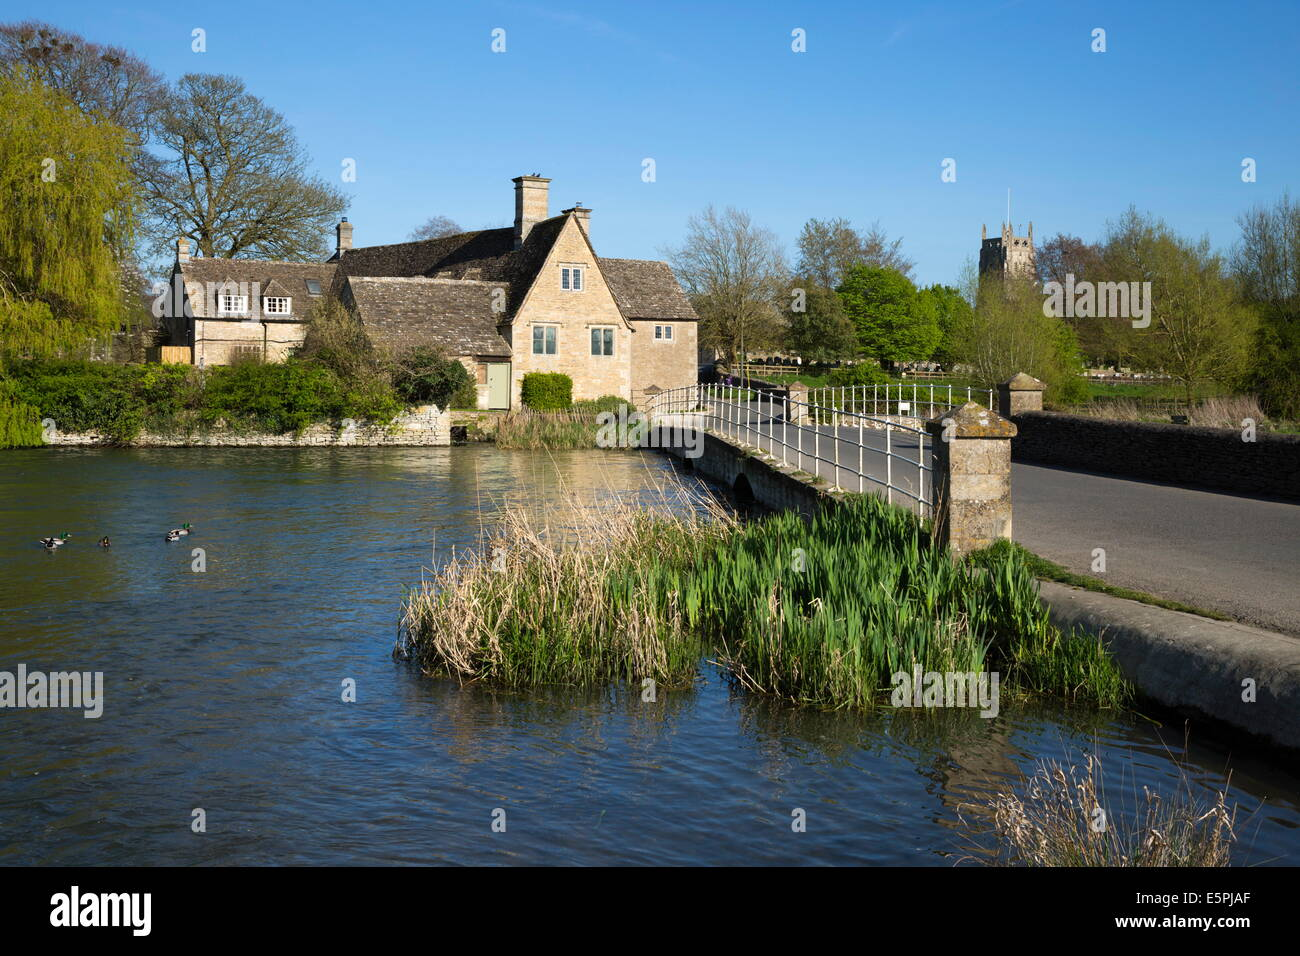 Waiten Hill Farm Cottages on the River Coln, Fairford, Cotswolds, Gloucestershire, England, United Kingdom, Europe - Stock Image